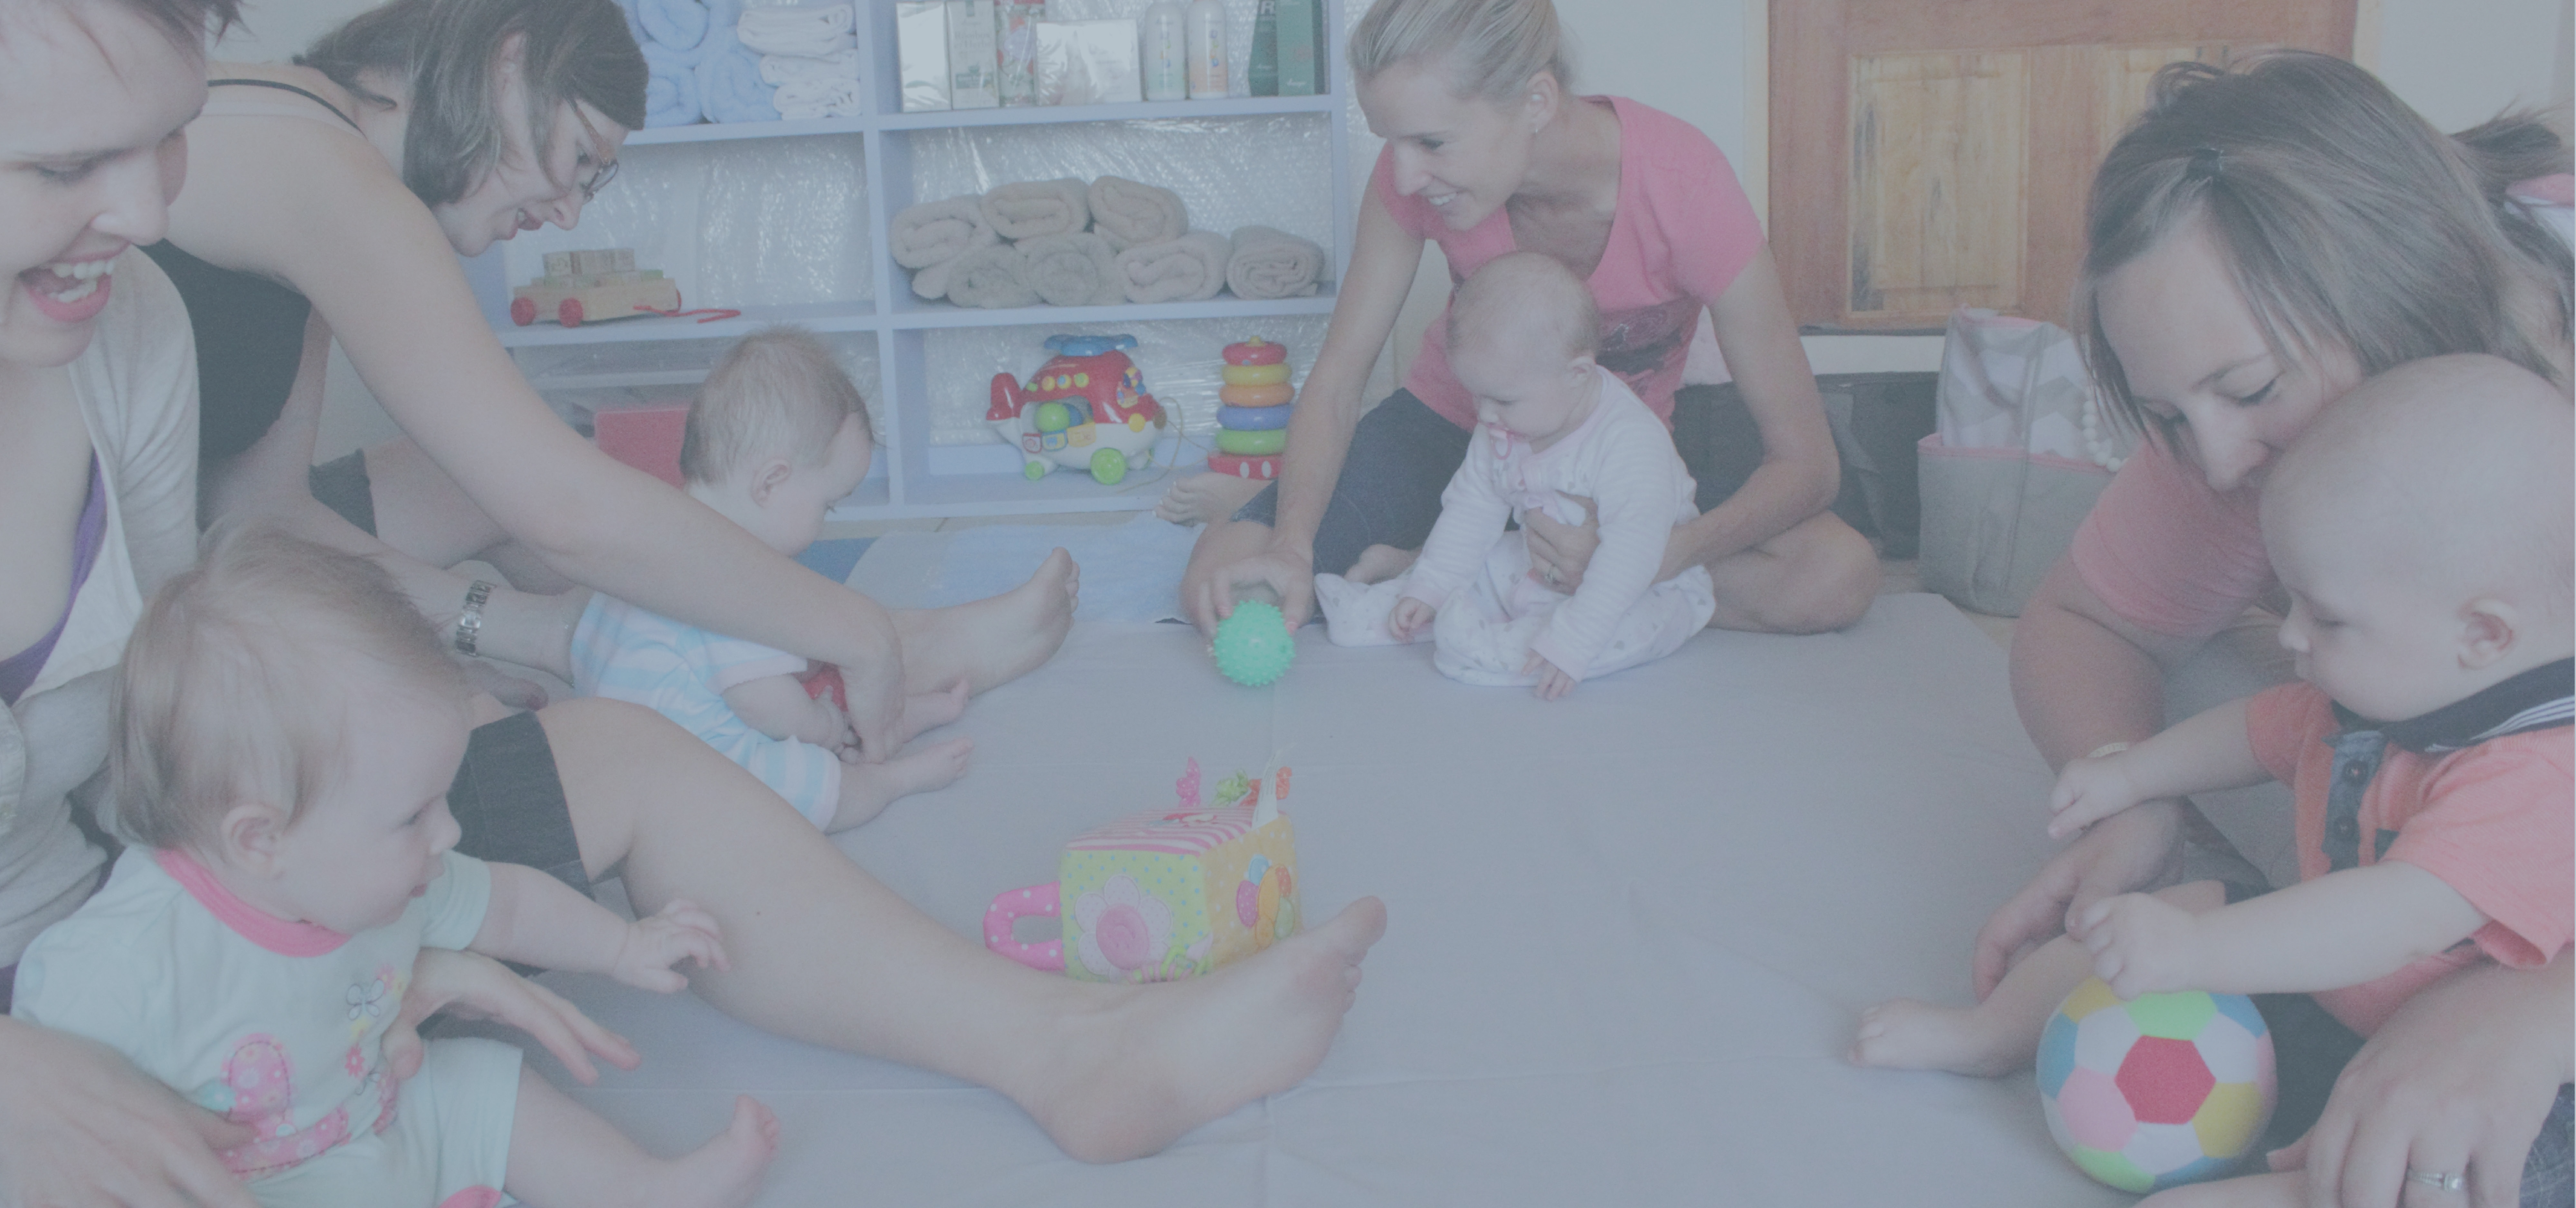 Welcome to babygym where we playfully develop your baby to